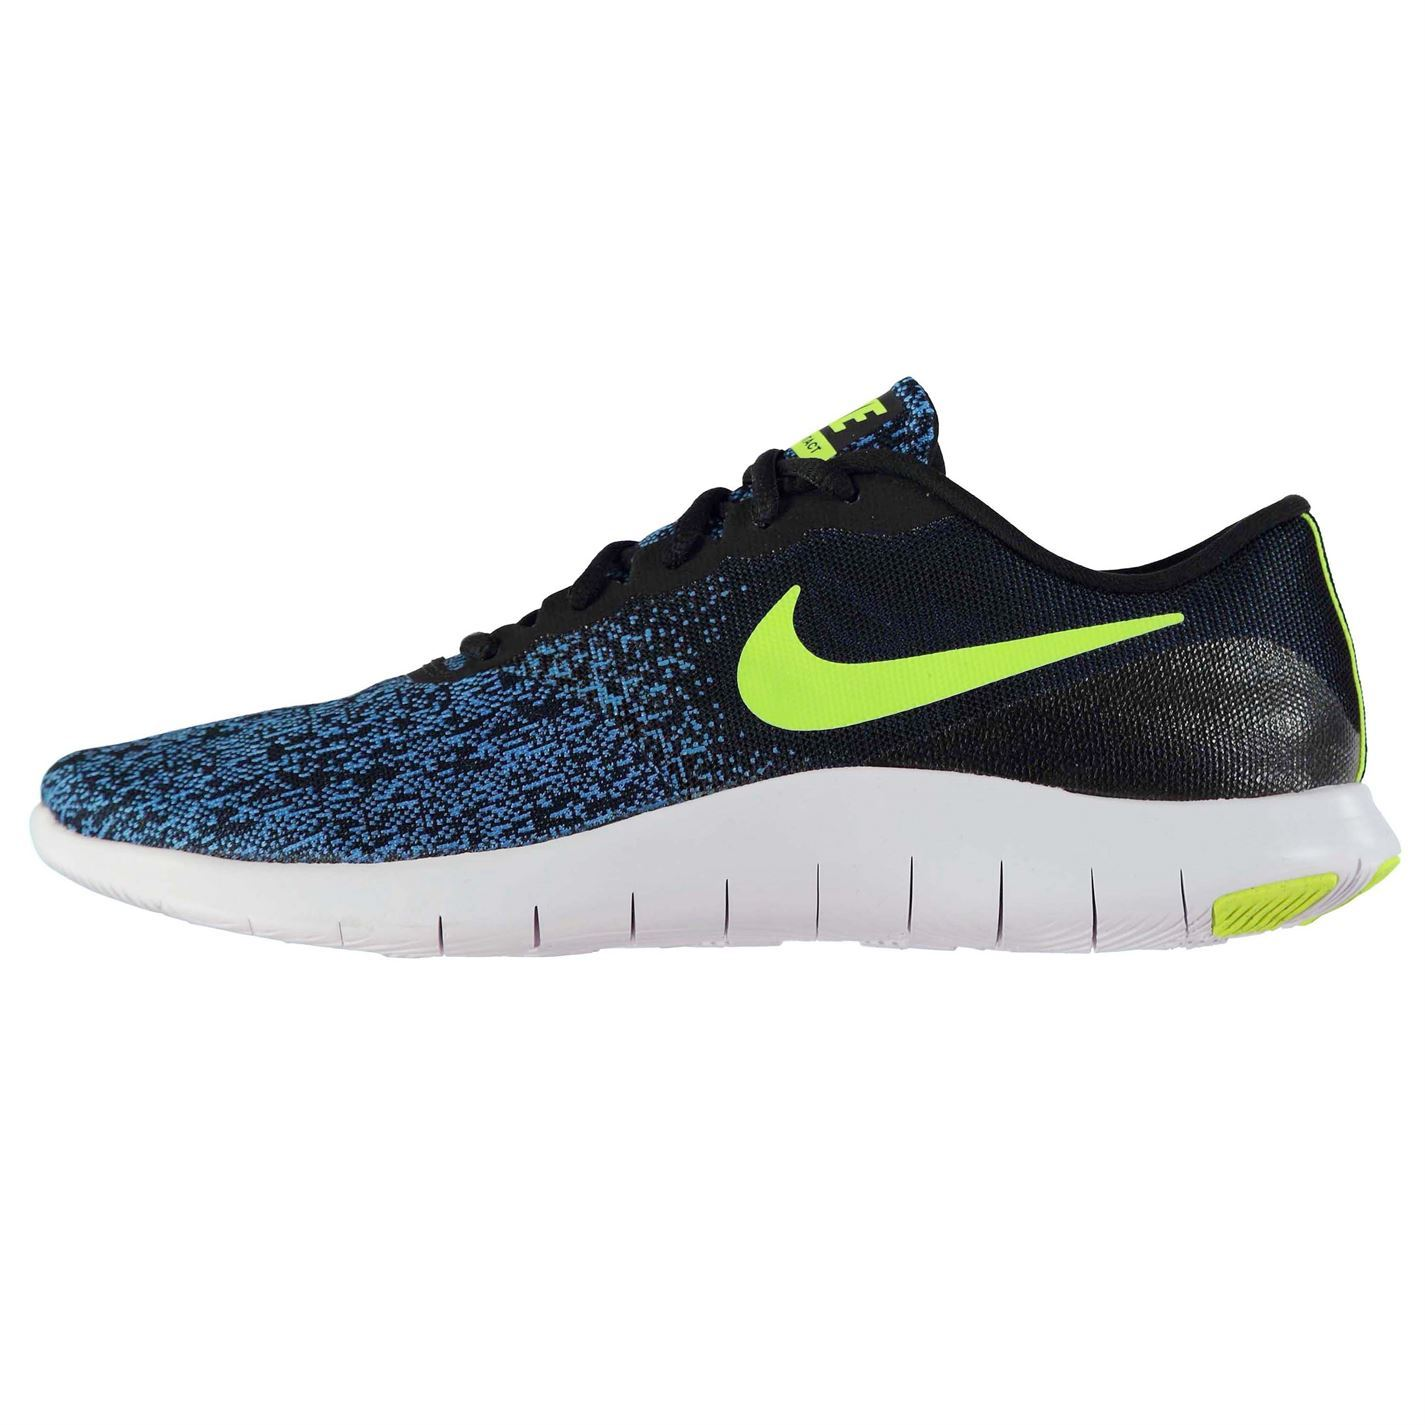 low cost 896a1 74b7a Image is loading Nike-Flex-Contact-Running-Shoes-Mens-Black-Volt-